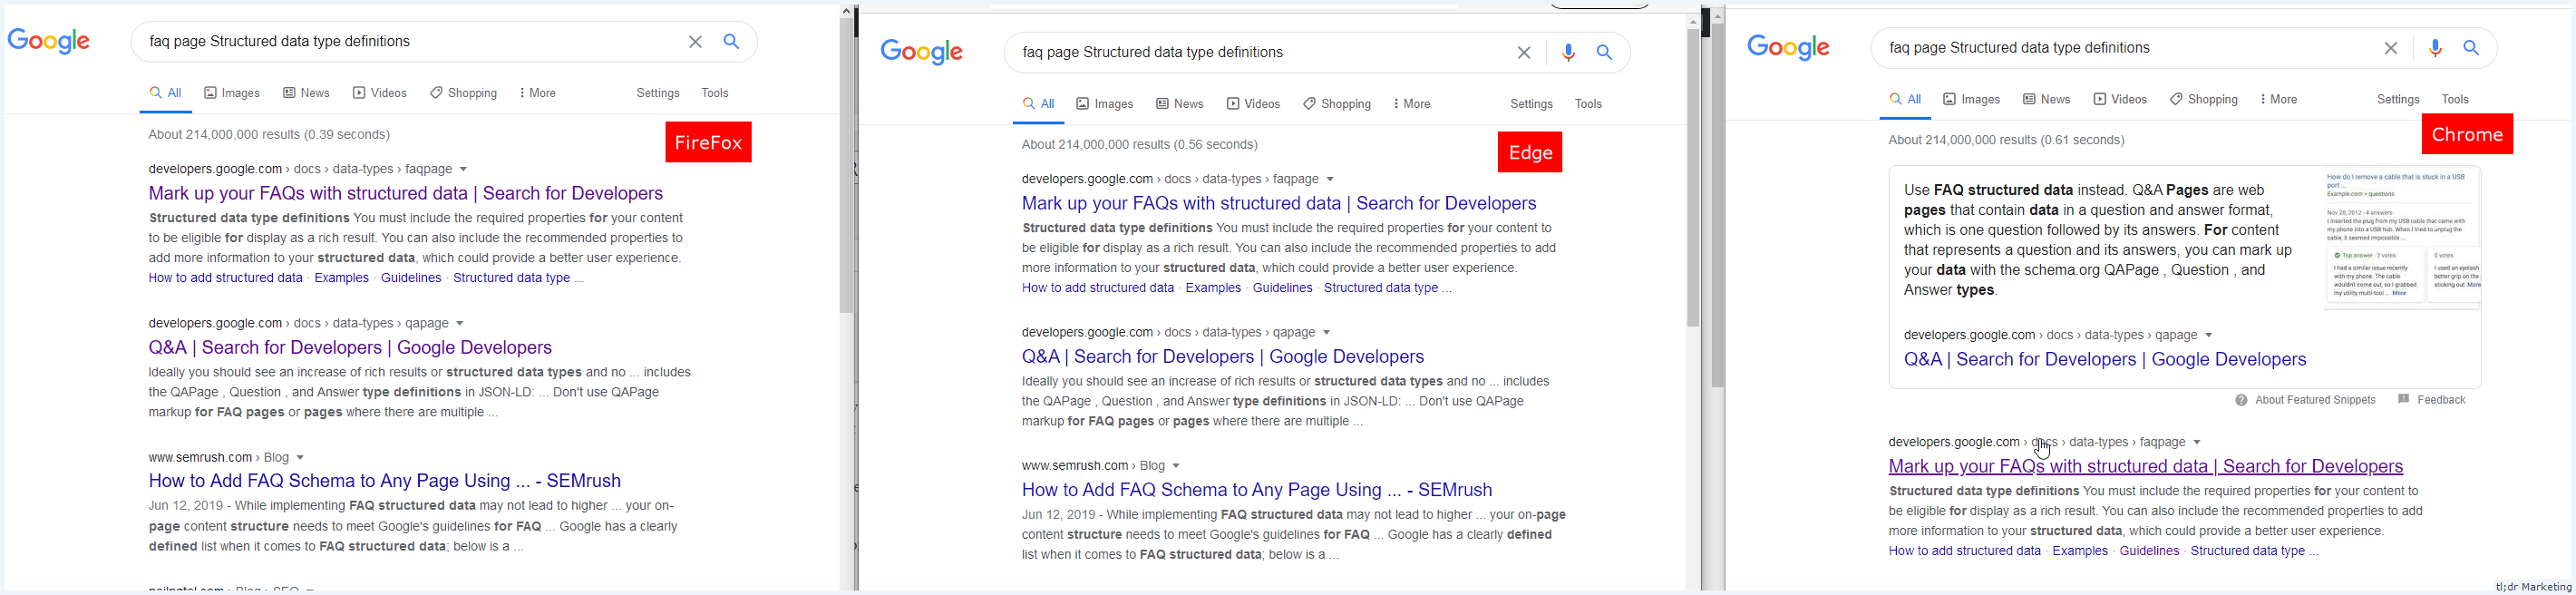 Google Automatically Adds Scroll To Text Fragment to Featured Snippets in SERPs on Chrome 1 - SEO News